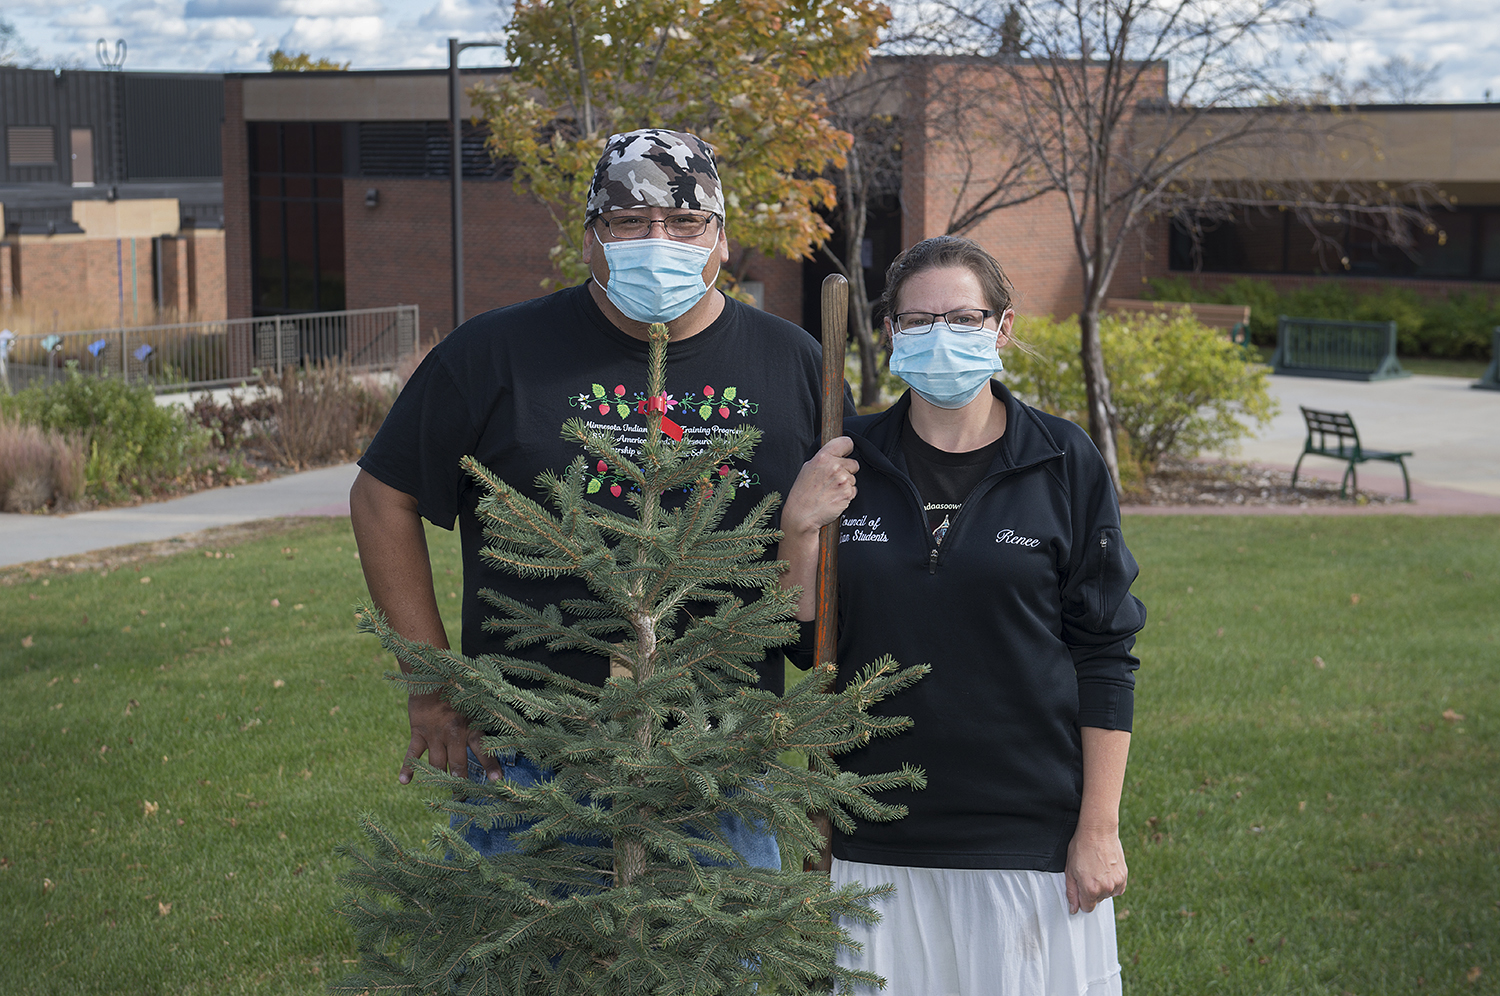 Renee Keezer with her husband, Justin,* *planting a tree on campus as a memorial to the legacy of Raymond and Margaret Carlson and their commitment to the welfare of future generations*.